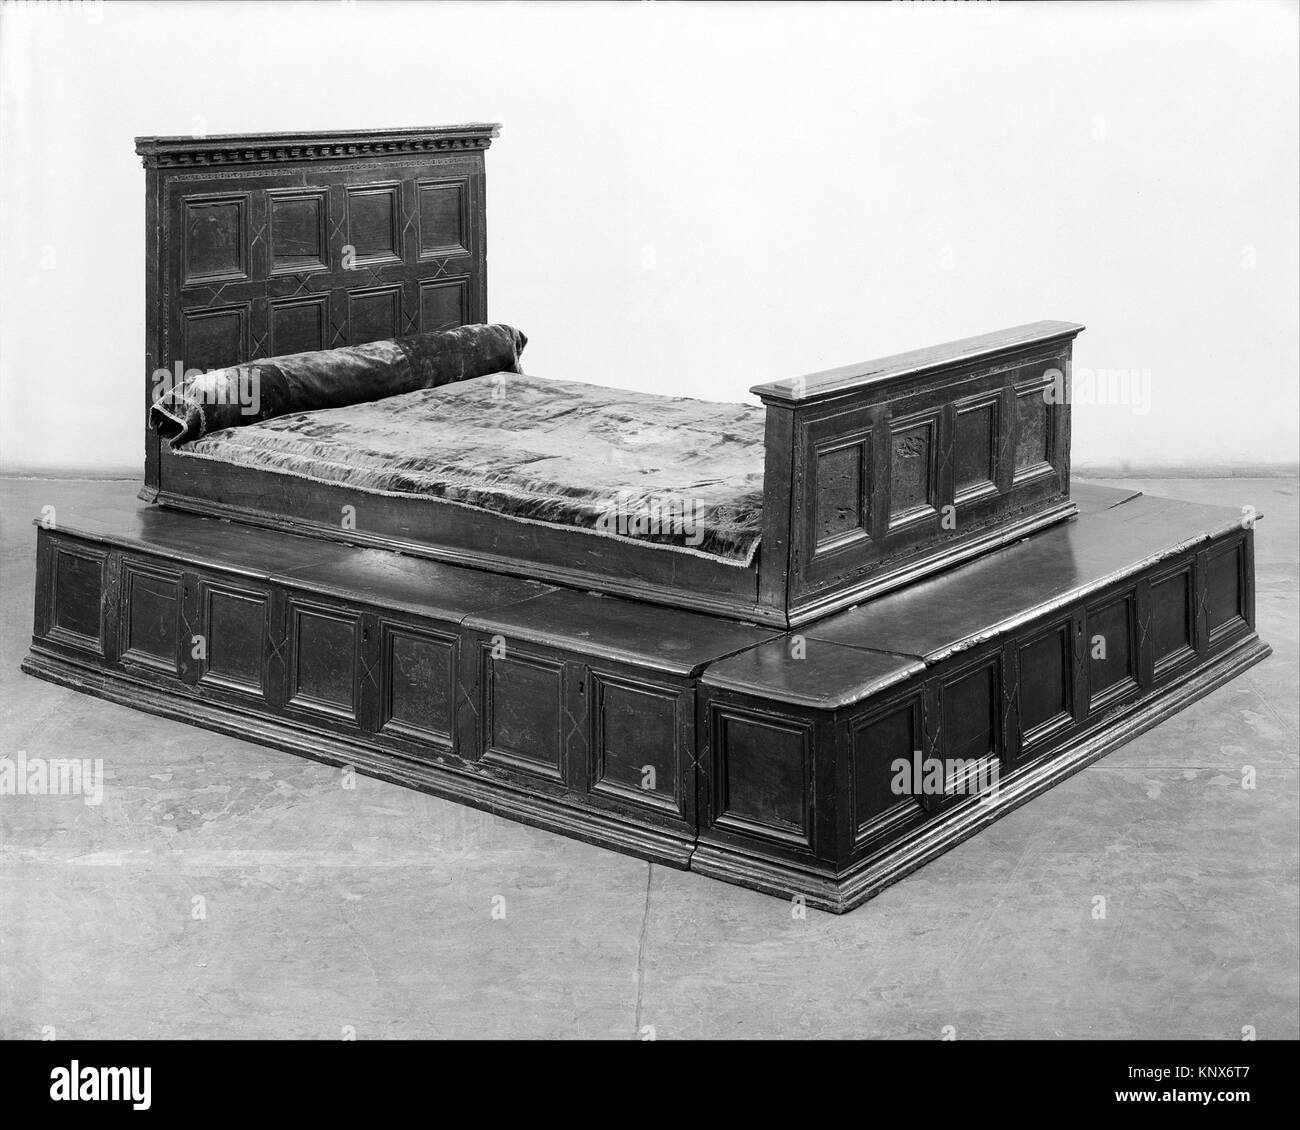 Dais Black and White Stock Photos & Images - Alamy